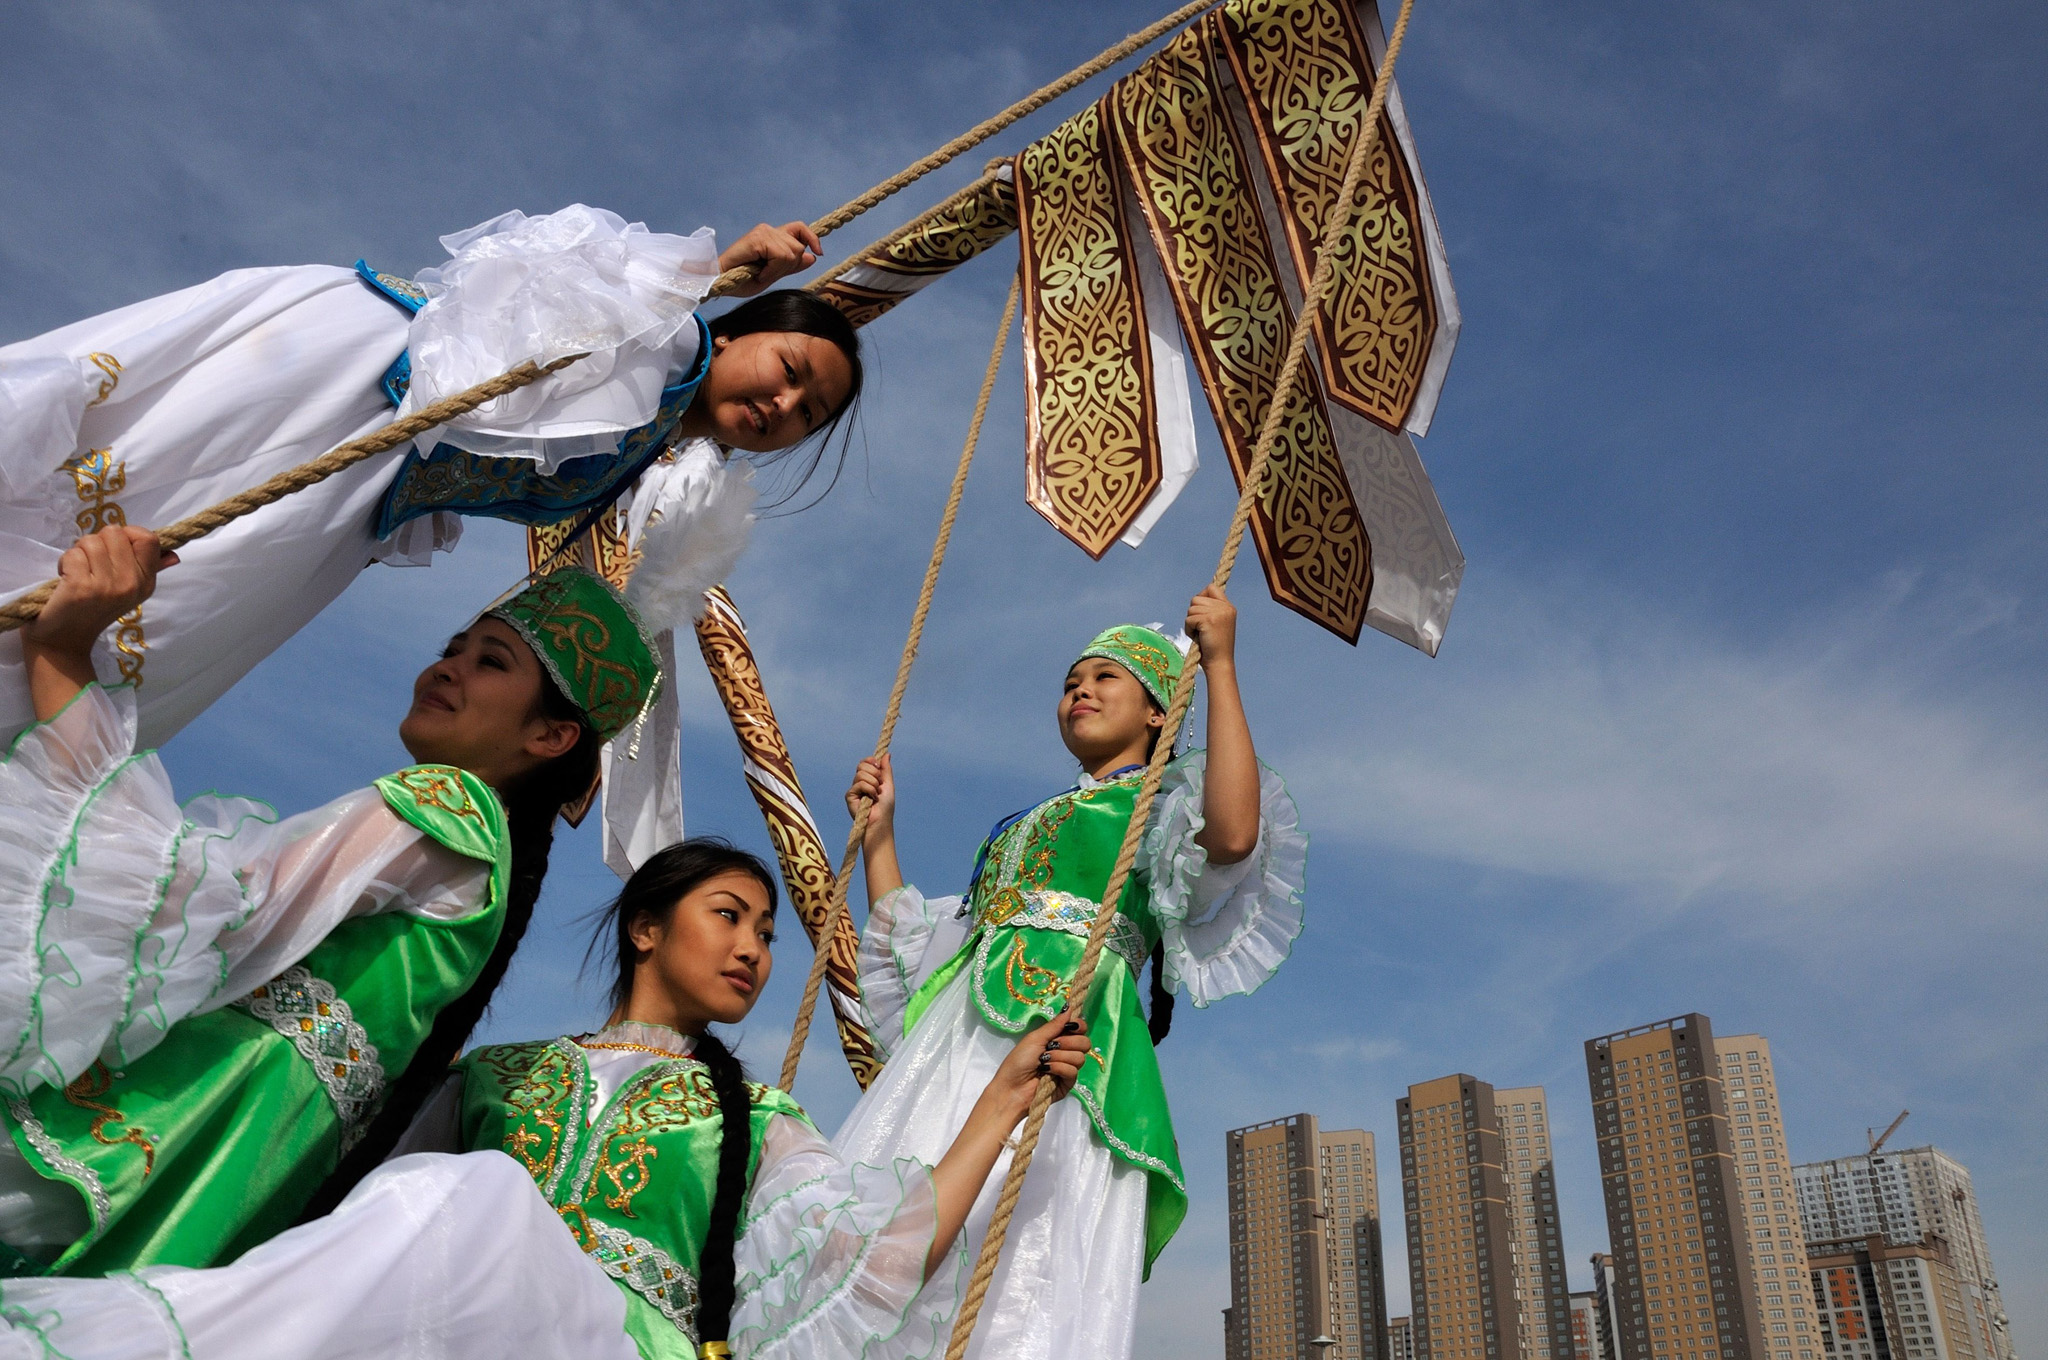 Kazakh women wearing traditional costume...Kazakh women wearing traditional costumes play on a swing during celebrations marking the 550th anniversary of Kazakh statehood in central Astana on September 11, 2015. AFP PHOTO / BOLAT SHAIKHINOVBOLAT SHAIKHINOV/AFP/Getty Images